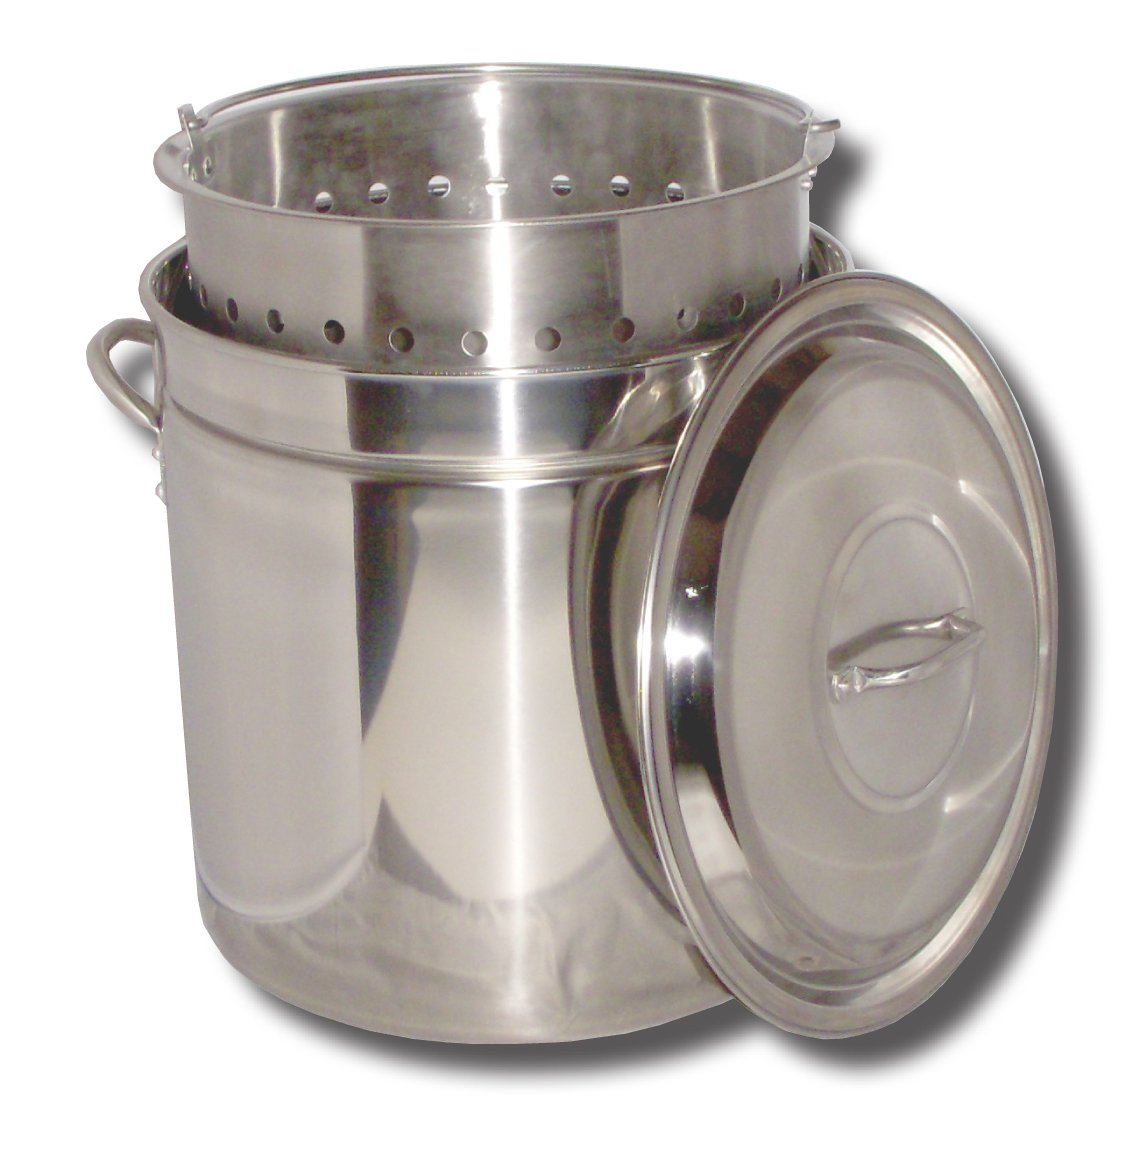 King Kooker KK24SR Ridged Stainless Steel Pot, 24-Quart